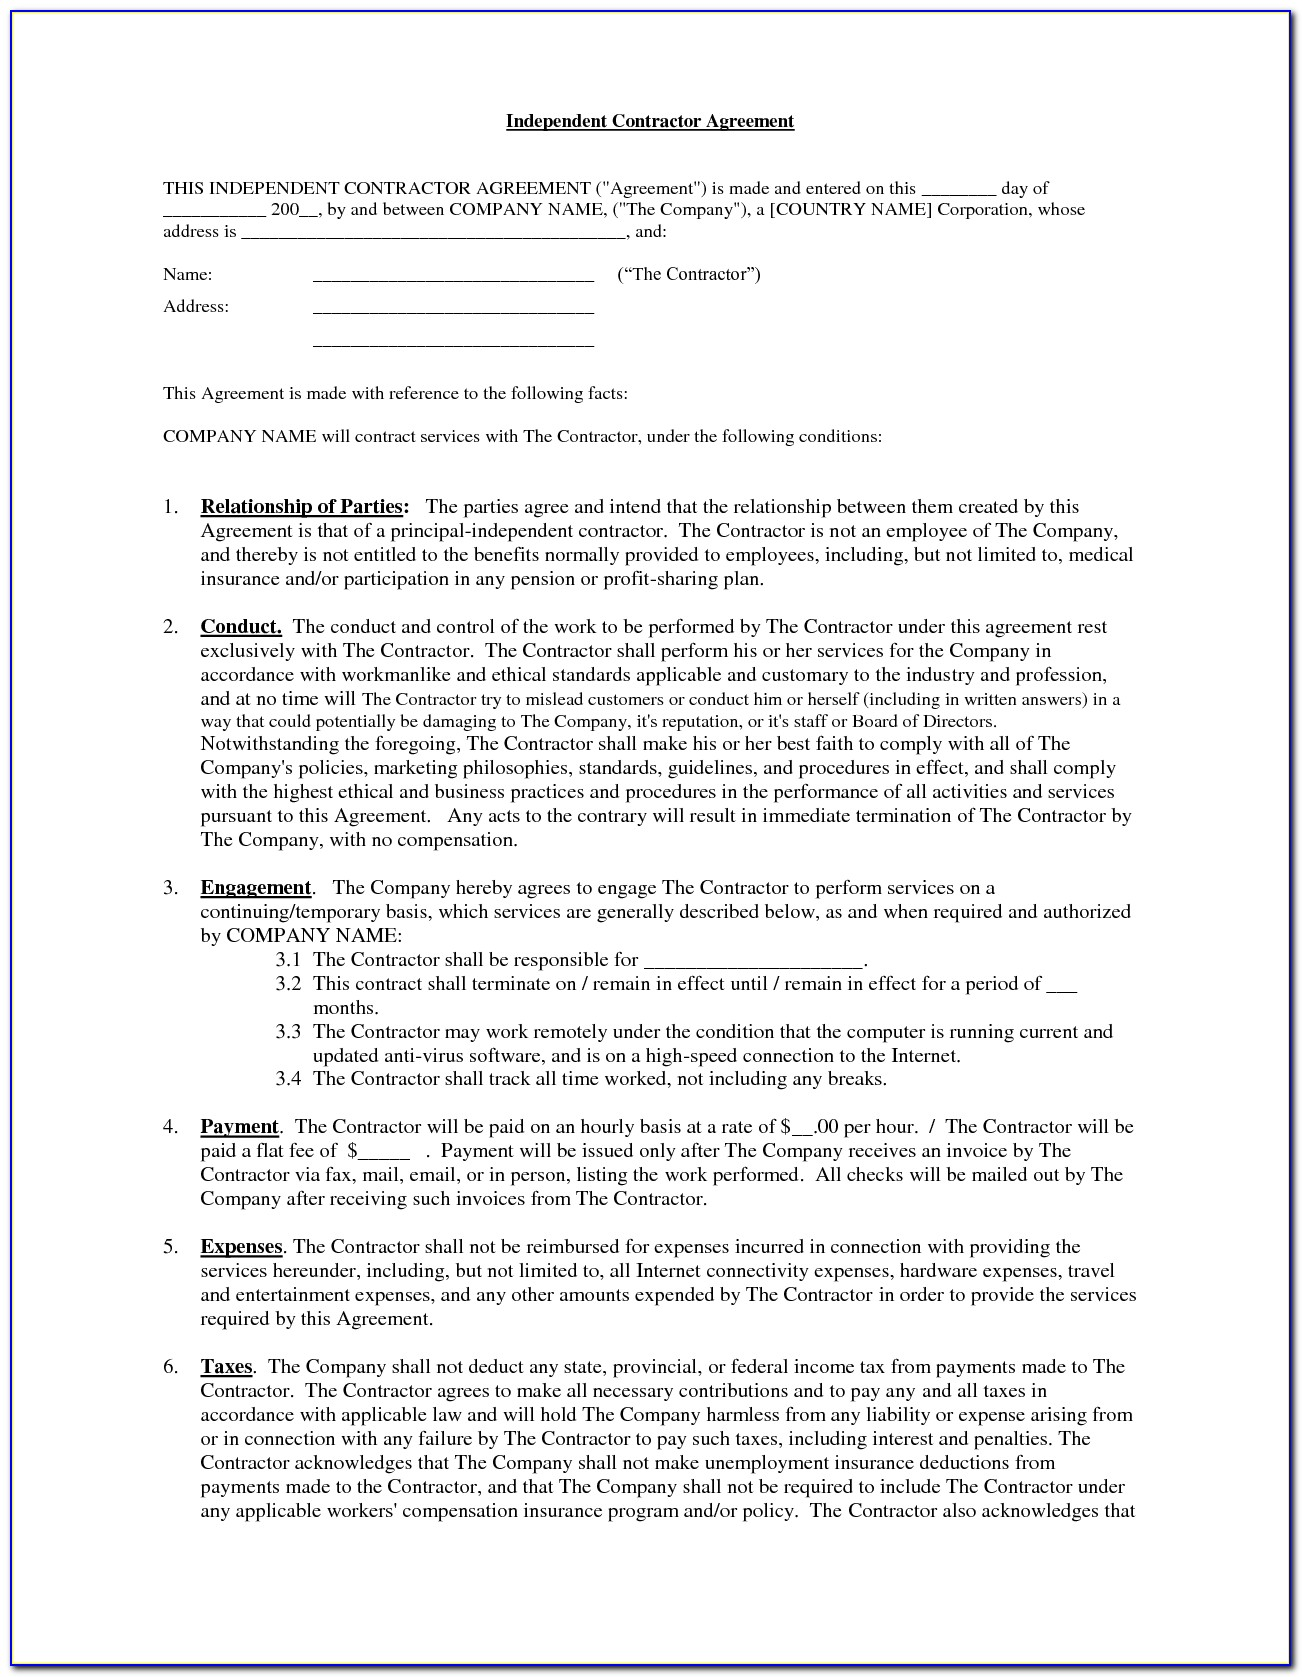 Real Estate Broker Independent Contractor Agreement